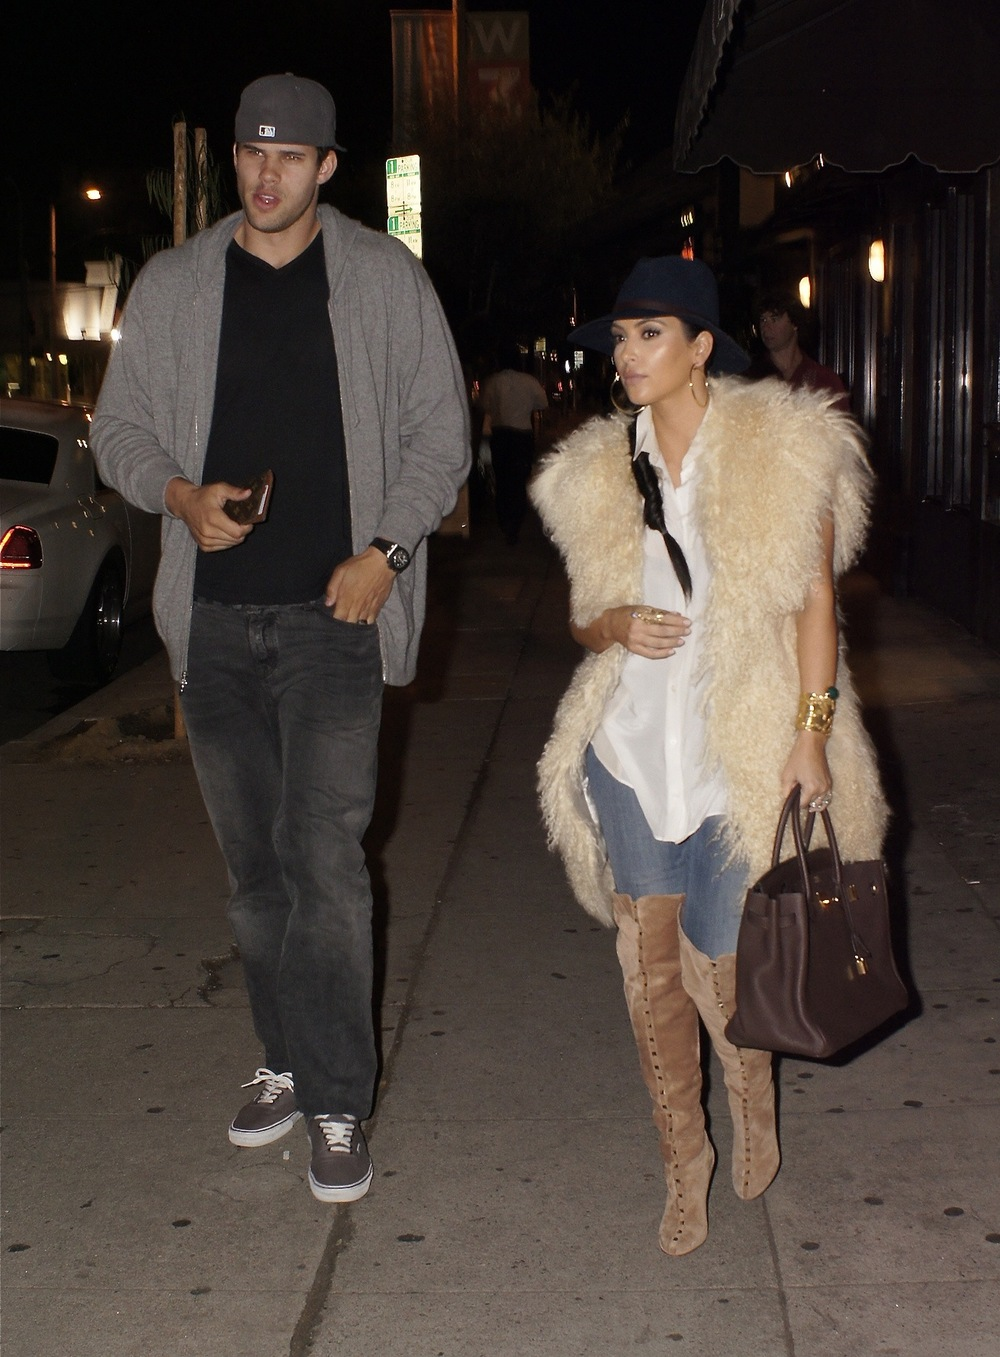 Kim Kardashian and Kris Humphries exit from Izakaya Restaurant on Third Street in Los Angeles, CA